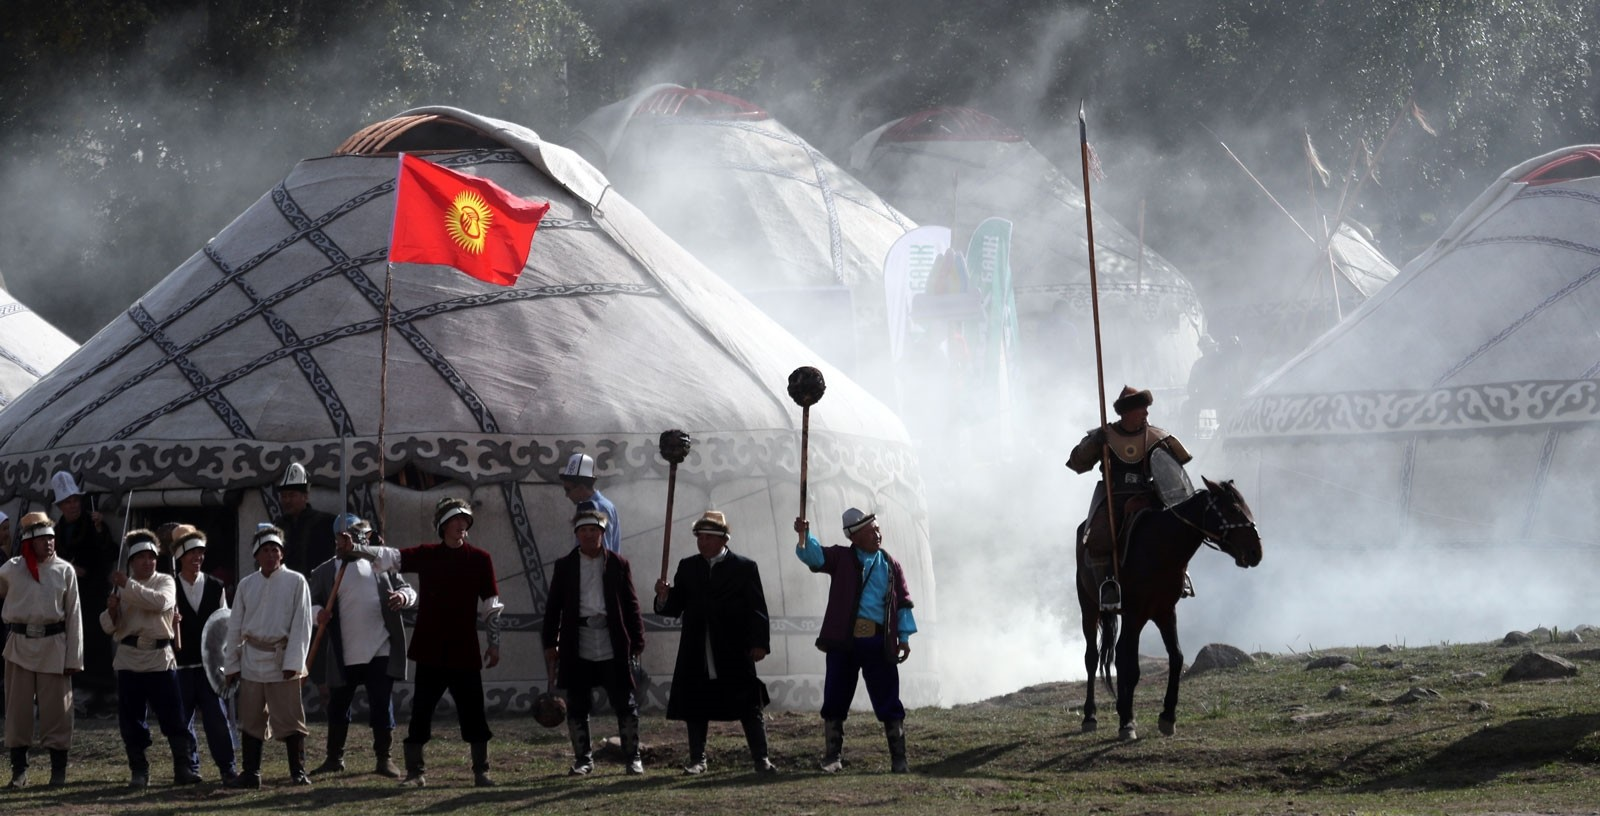 Kyrgyzstan kicks off third World Nomad Games